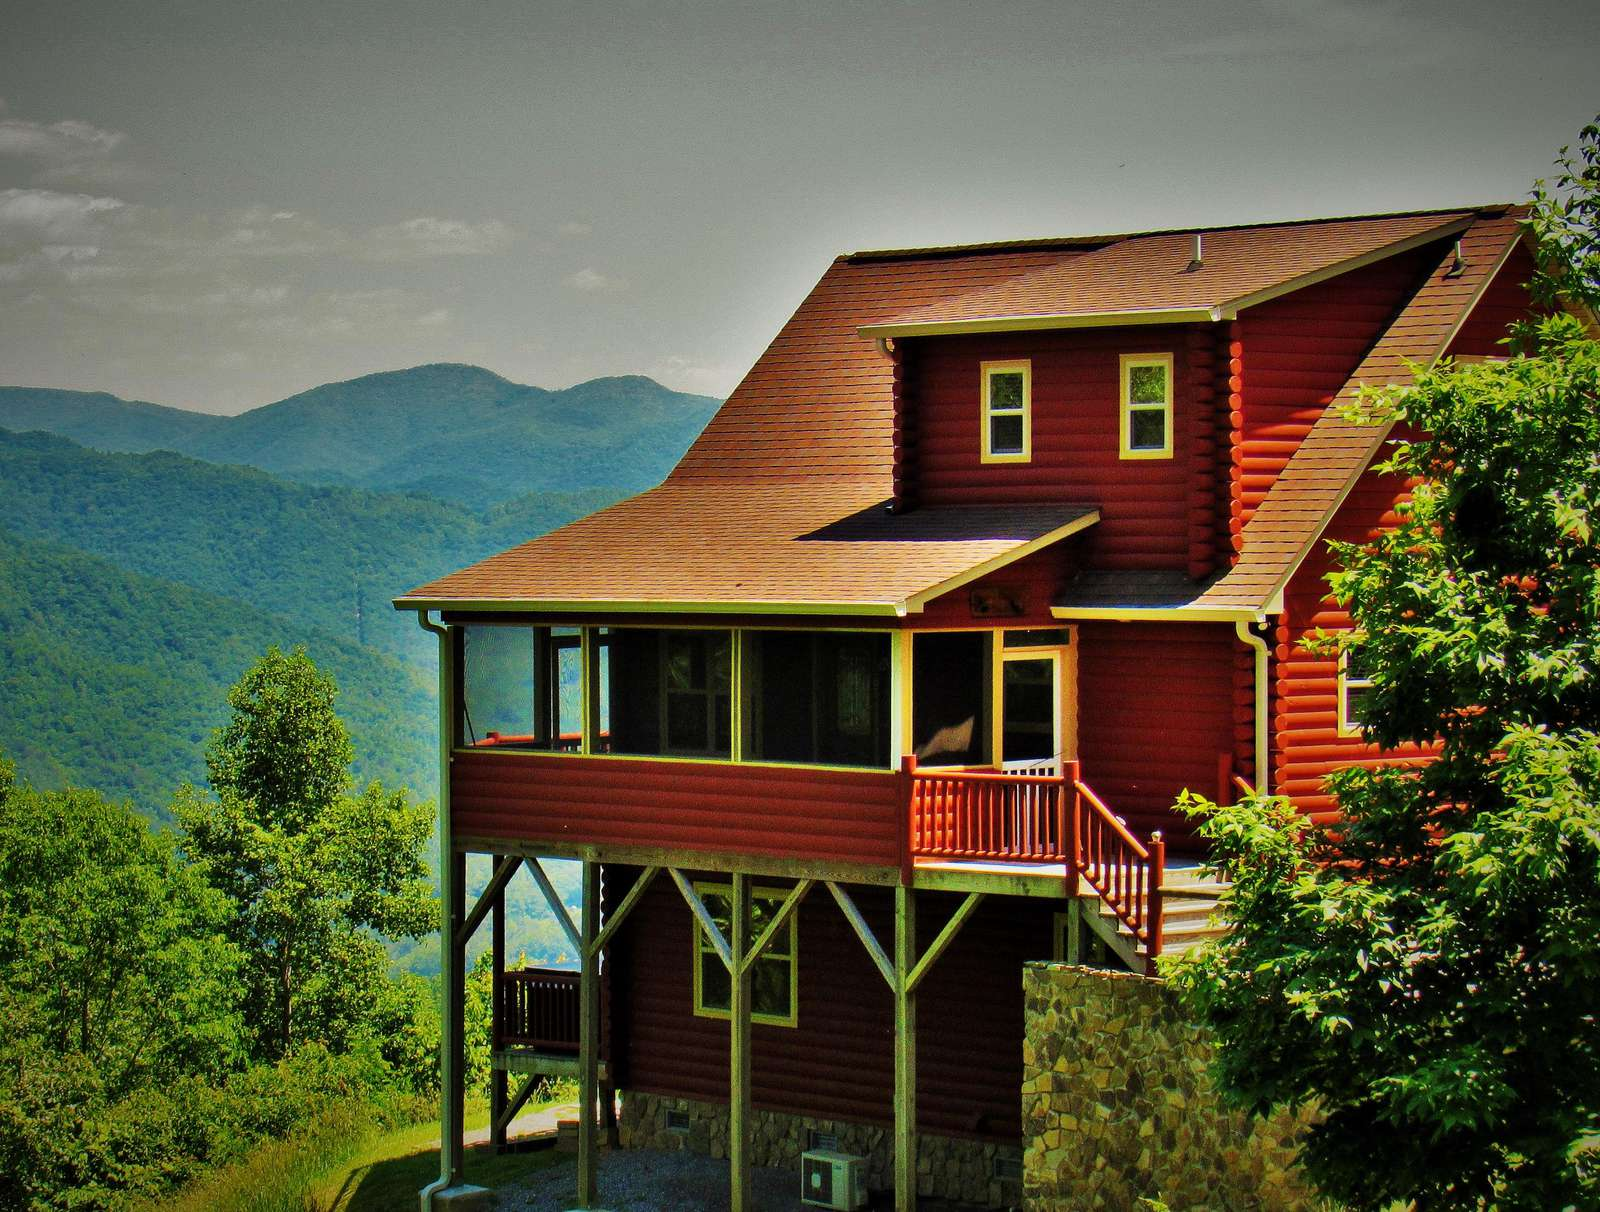 Awe inspiring Views of the Cabin as you arrive!